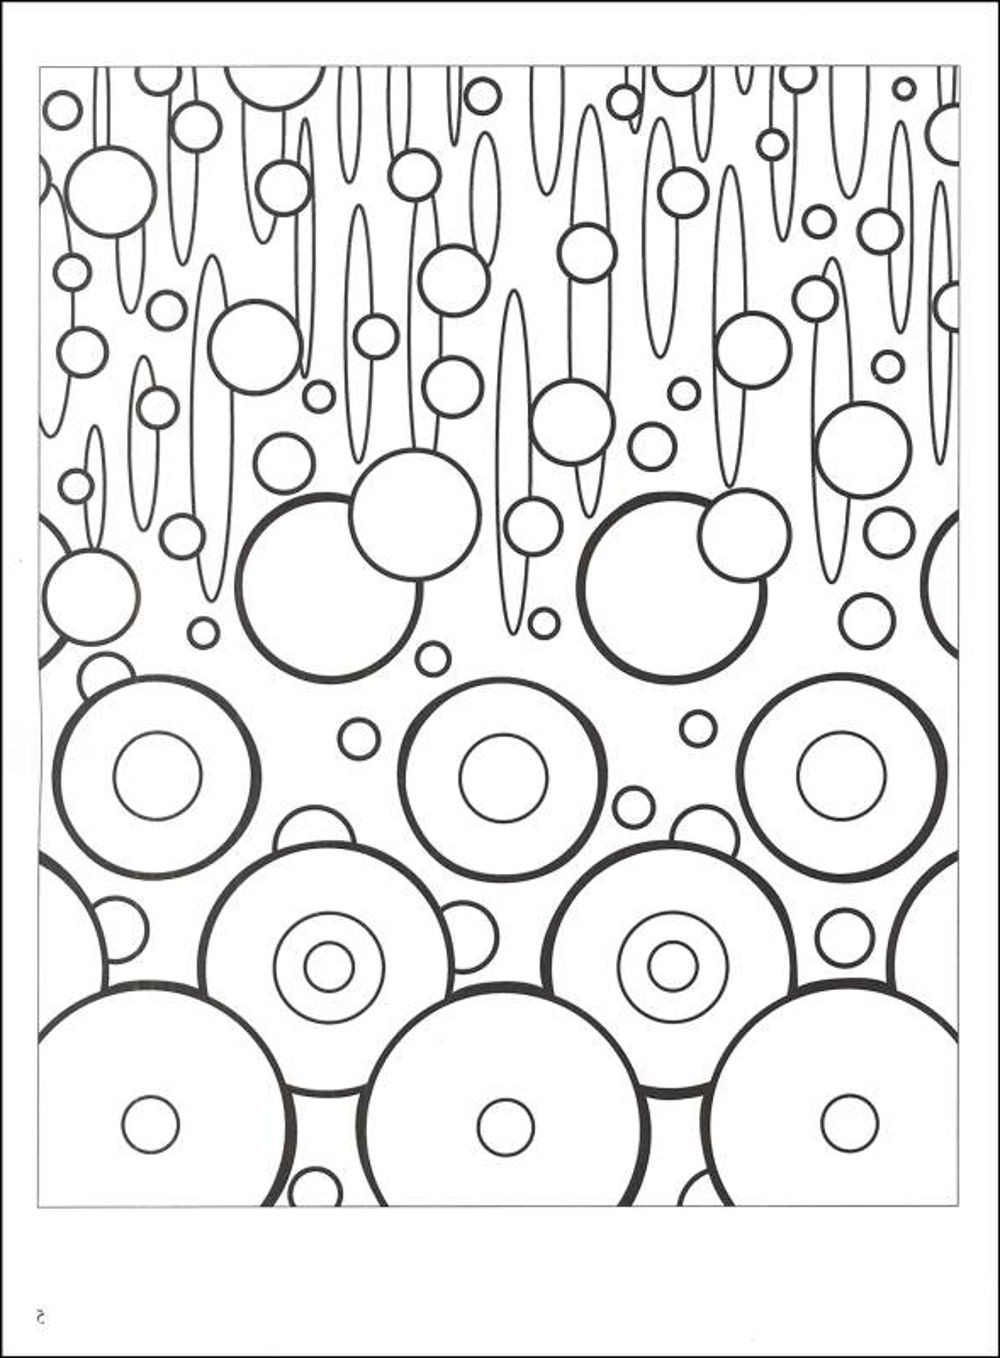 Free Online Coloring Pages for Adults 1000—1358 to Print Of Snowflake Coloring Pages for Adults Coloring Pages Inspiring Printable